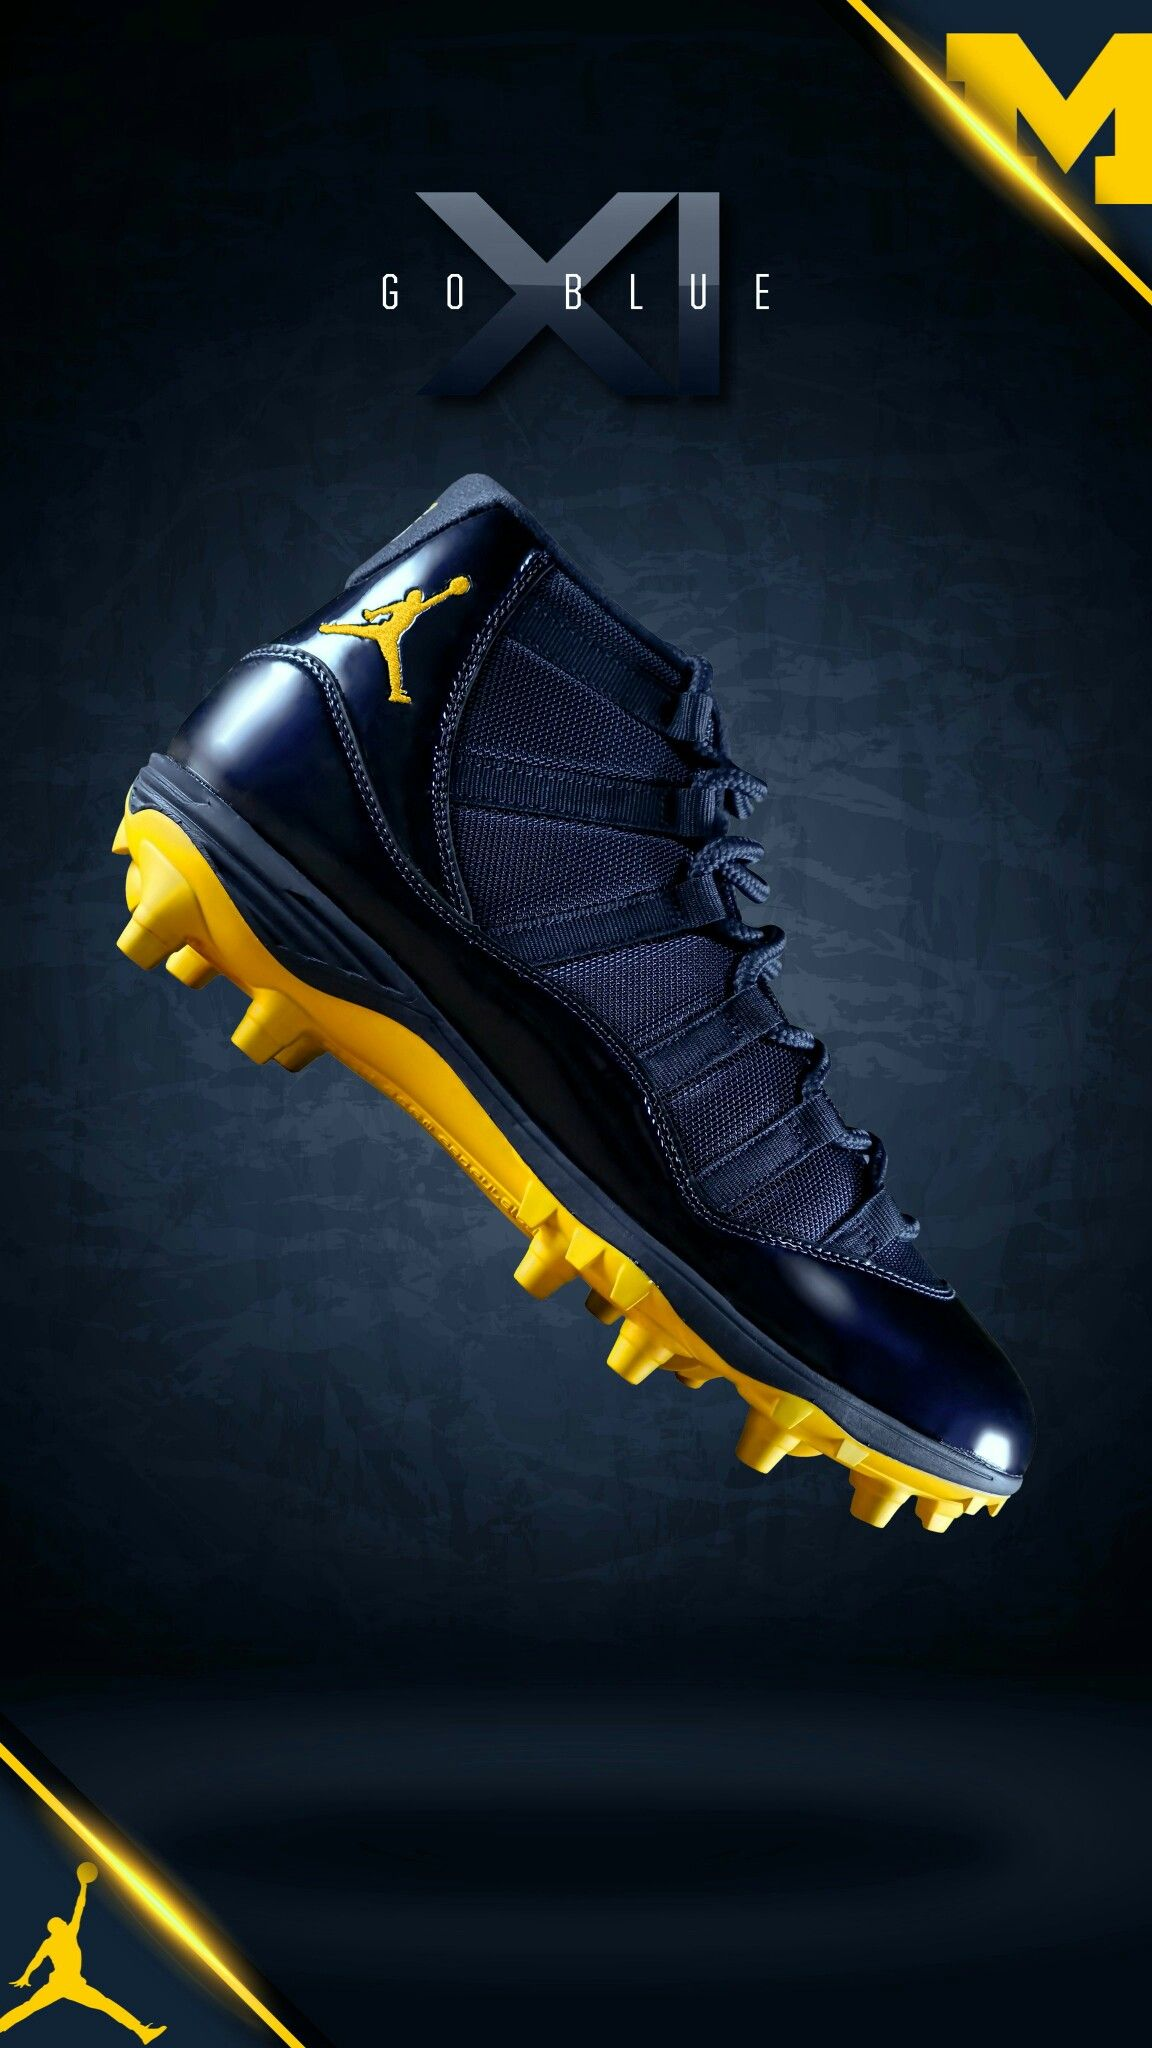 Pin By Eric On Michigan Shoes Uniforms Mens Football Cleats Football Gear Cleats